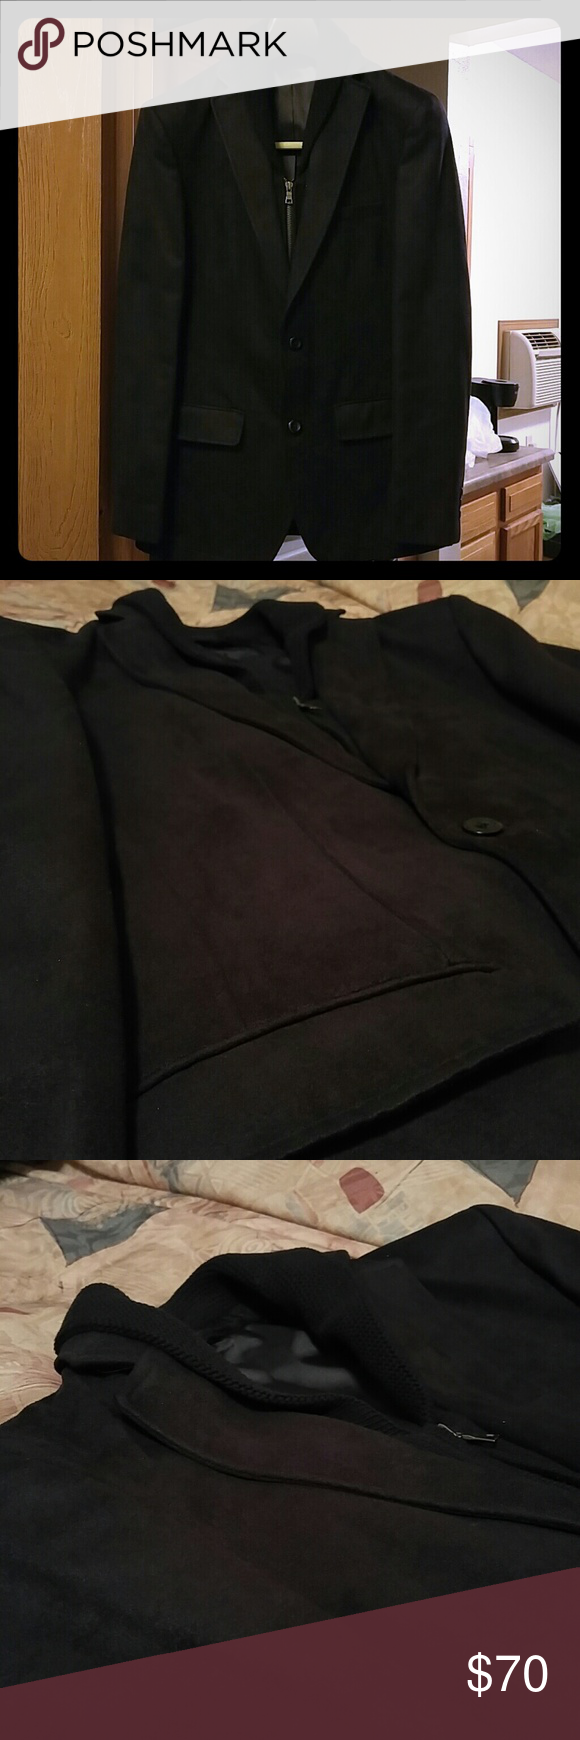 Black velvet blazer Black velvet blazer with attachable knit collar. New and in good condition G2000 Suits & Blazers Sport Coats & Blazers